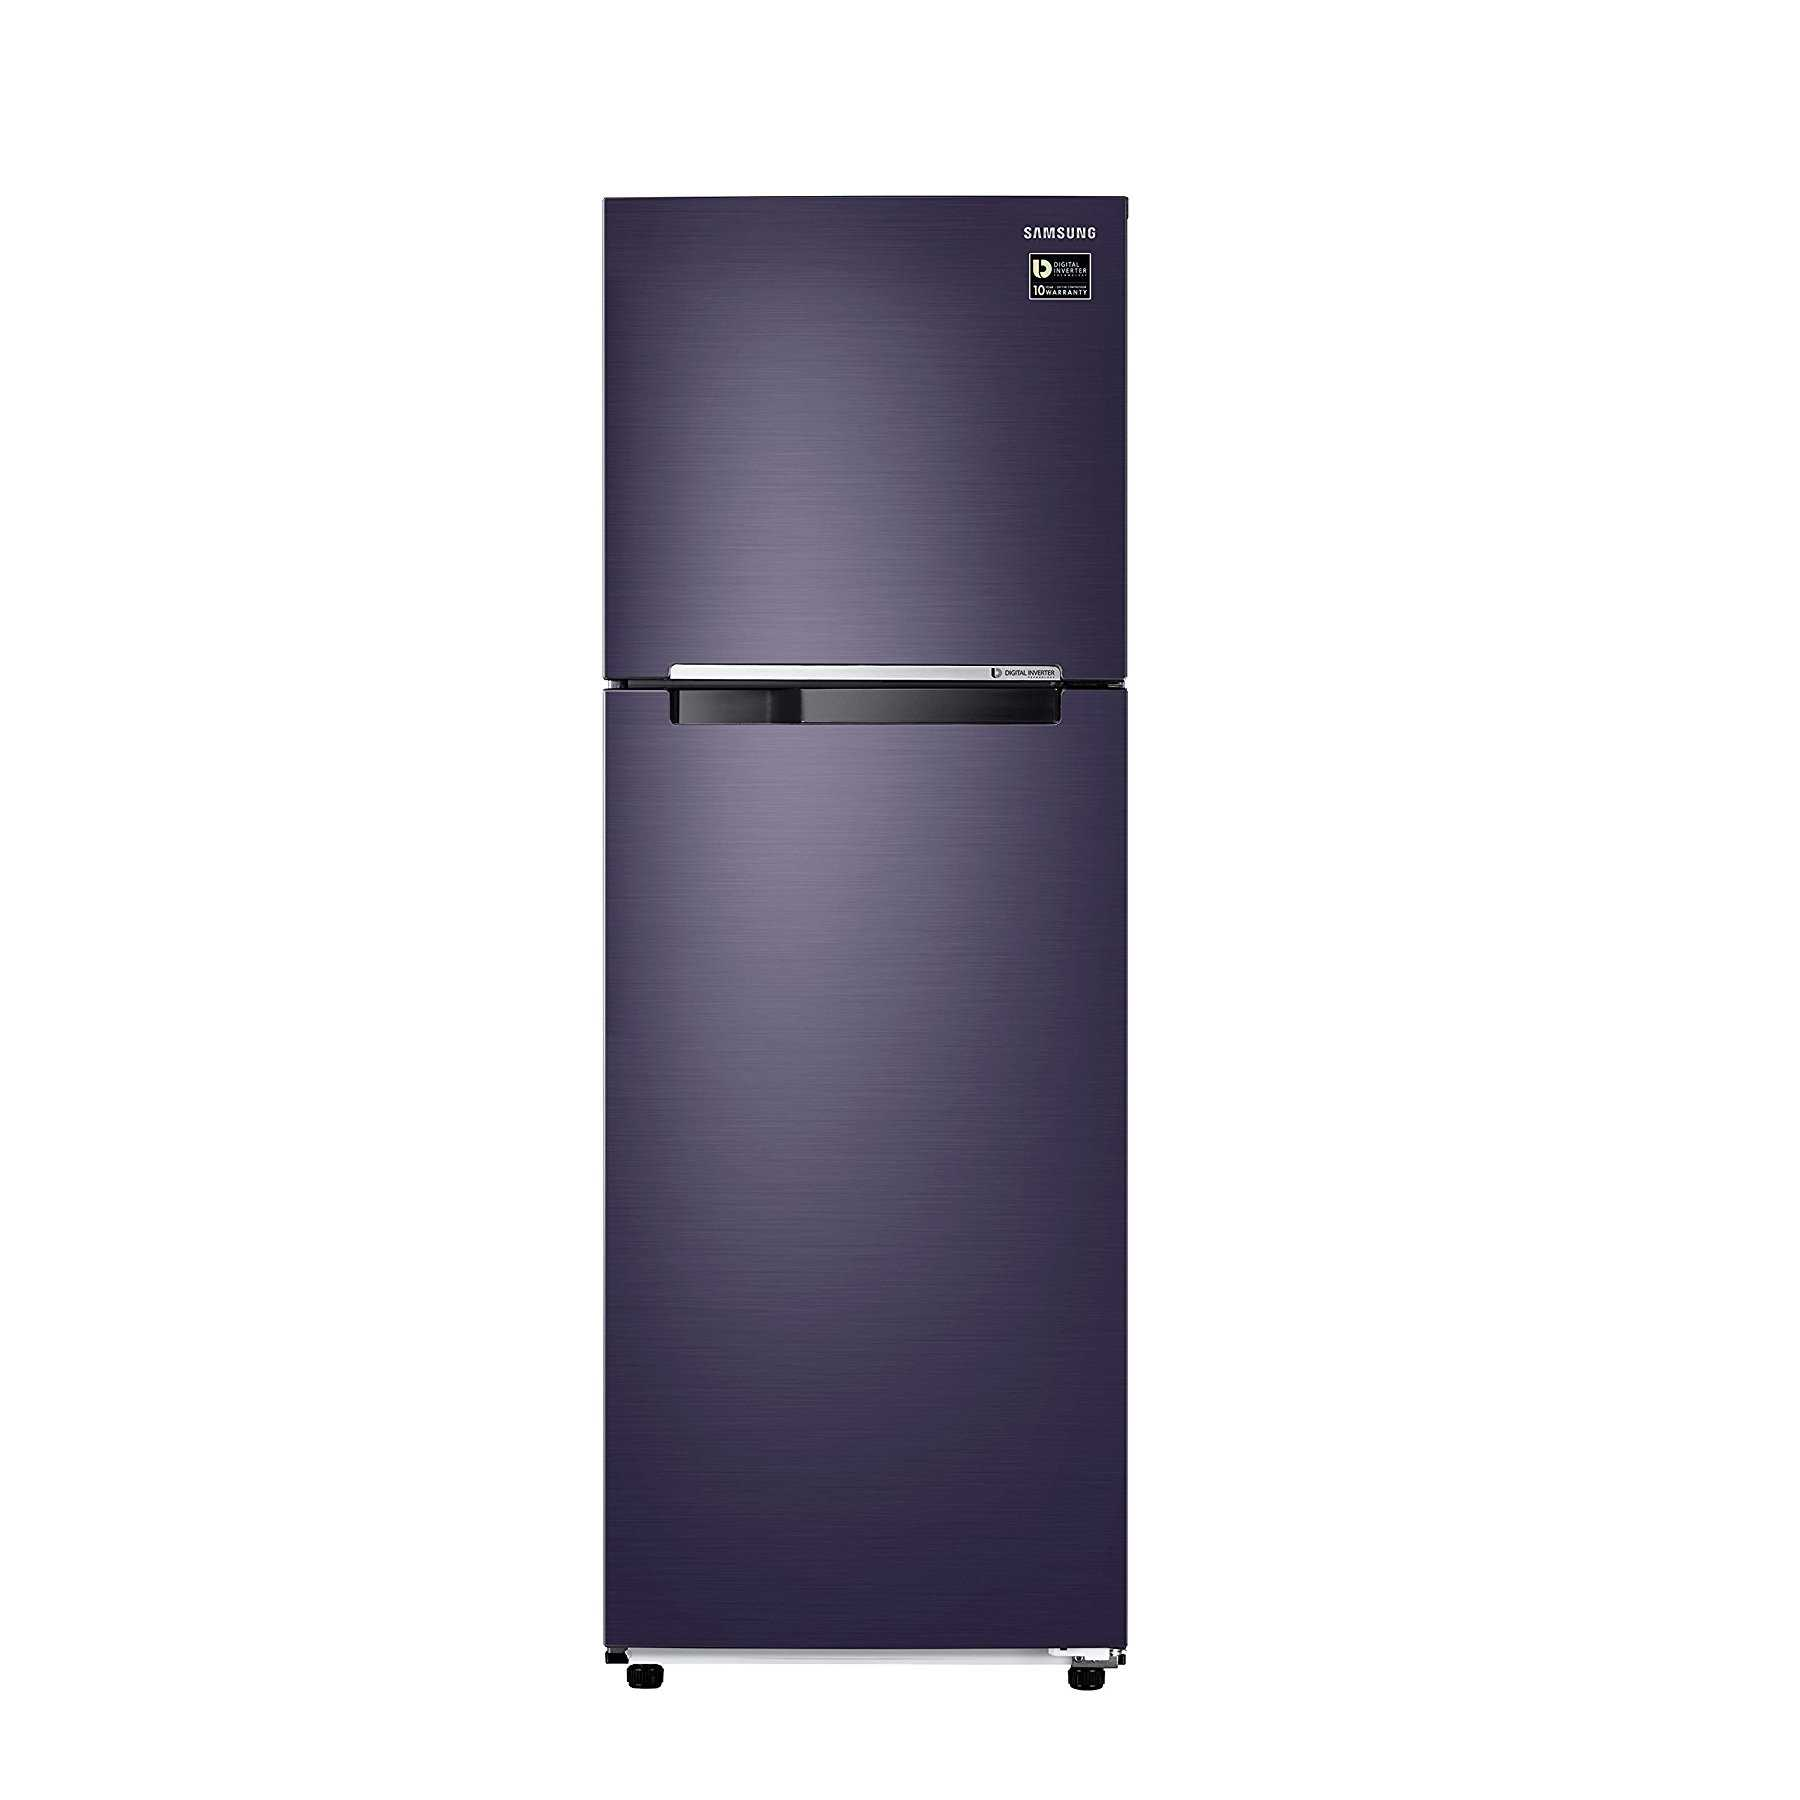 just star com frost alienskart l orchid lg si free scarlet door double refrigerator at